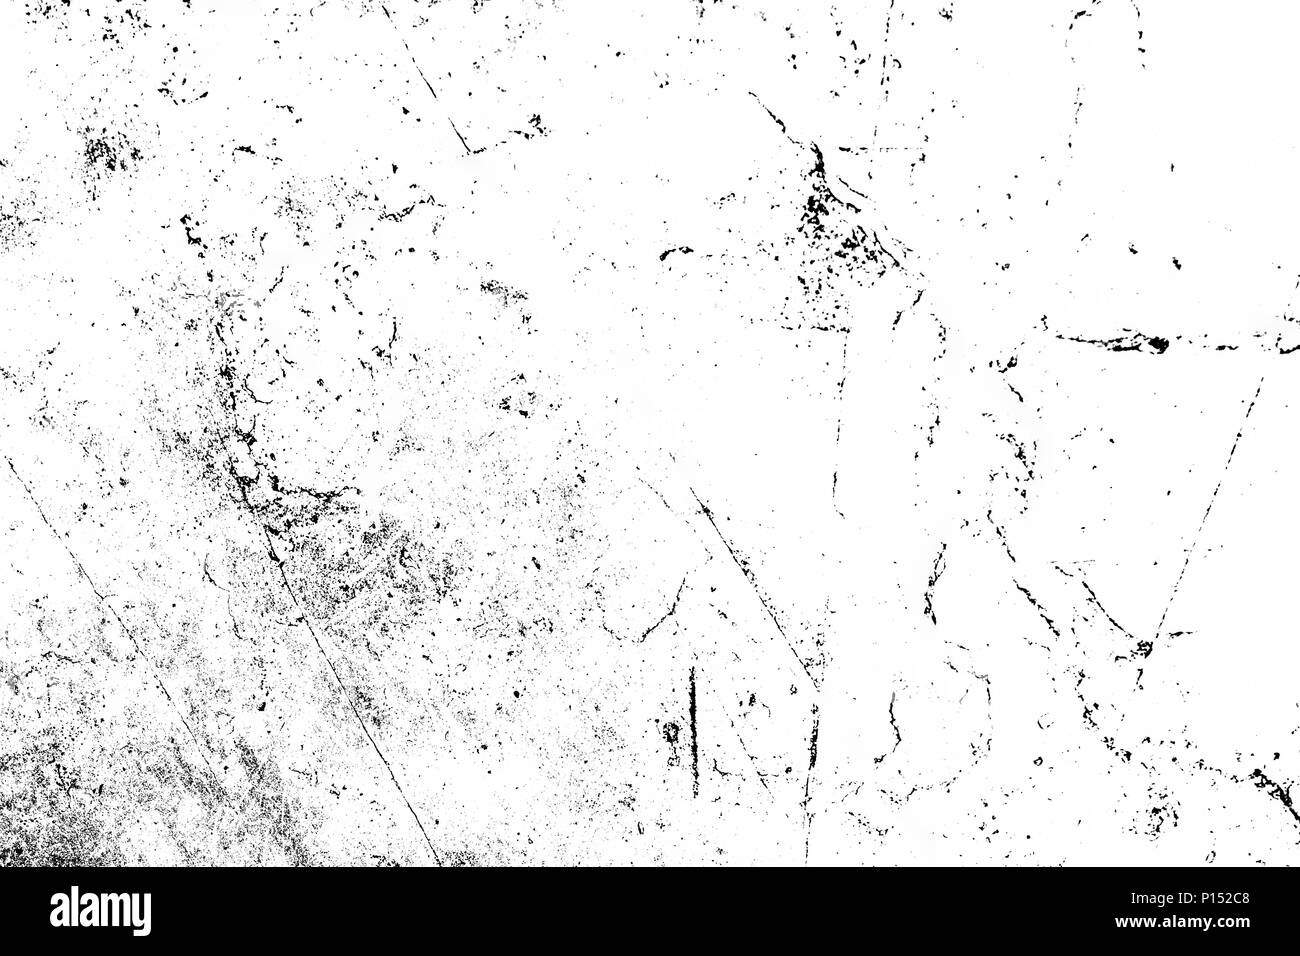 Grunge black and white Urban texture. Place over any object create black grunge effect. Distress grunge texture easy to use overlay. Distress grain ov - Stock Image